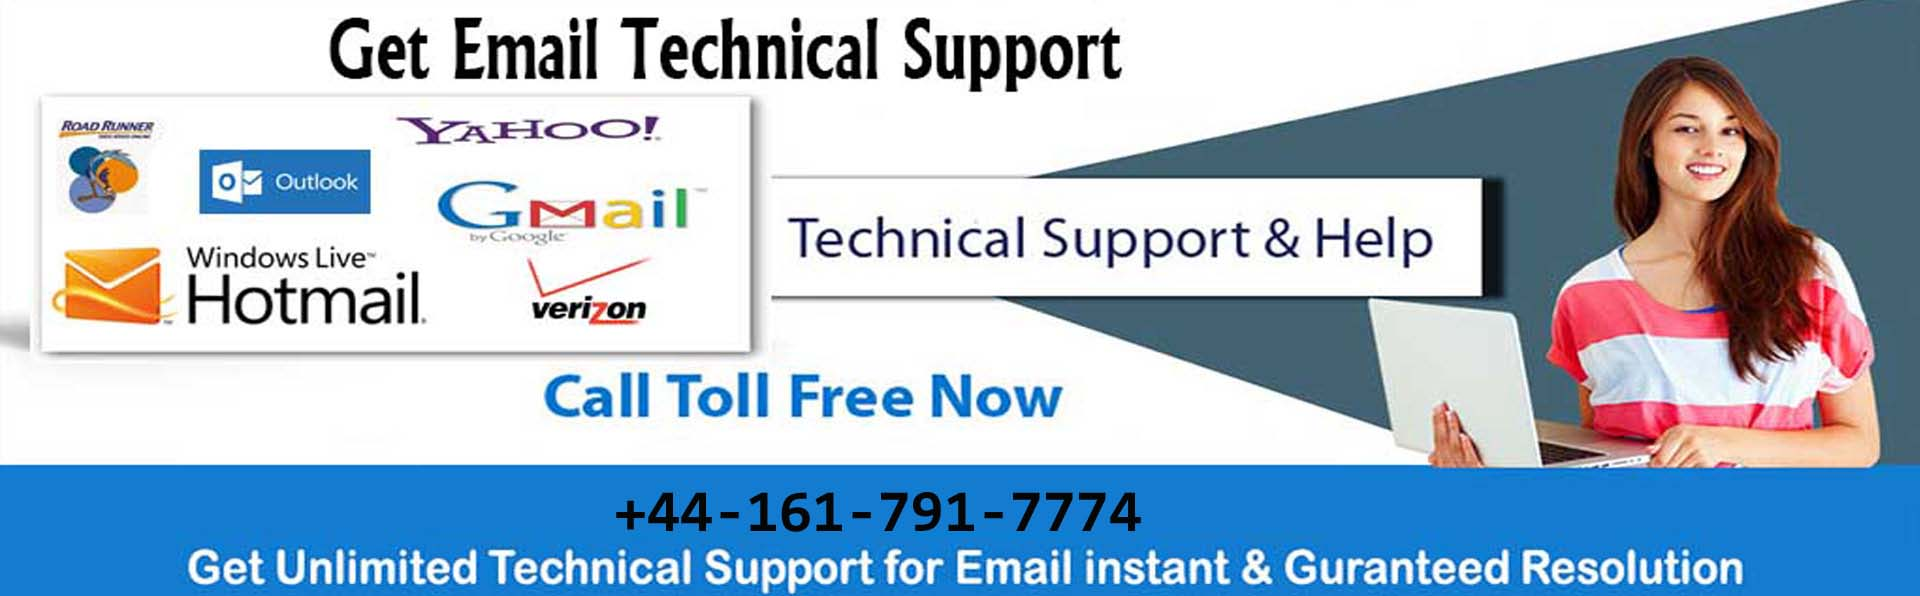 Email Technical Support Call Us Now @ +44-330-113-5112